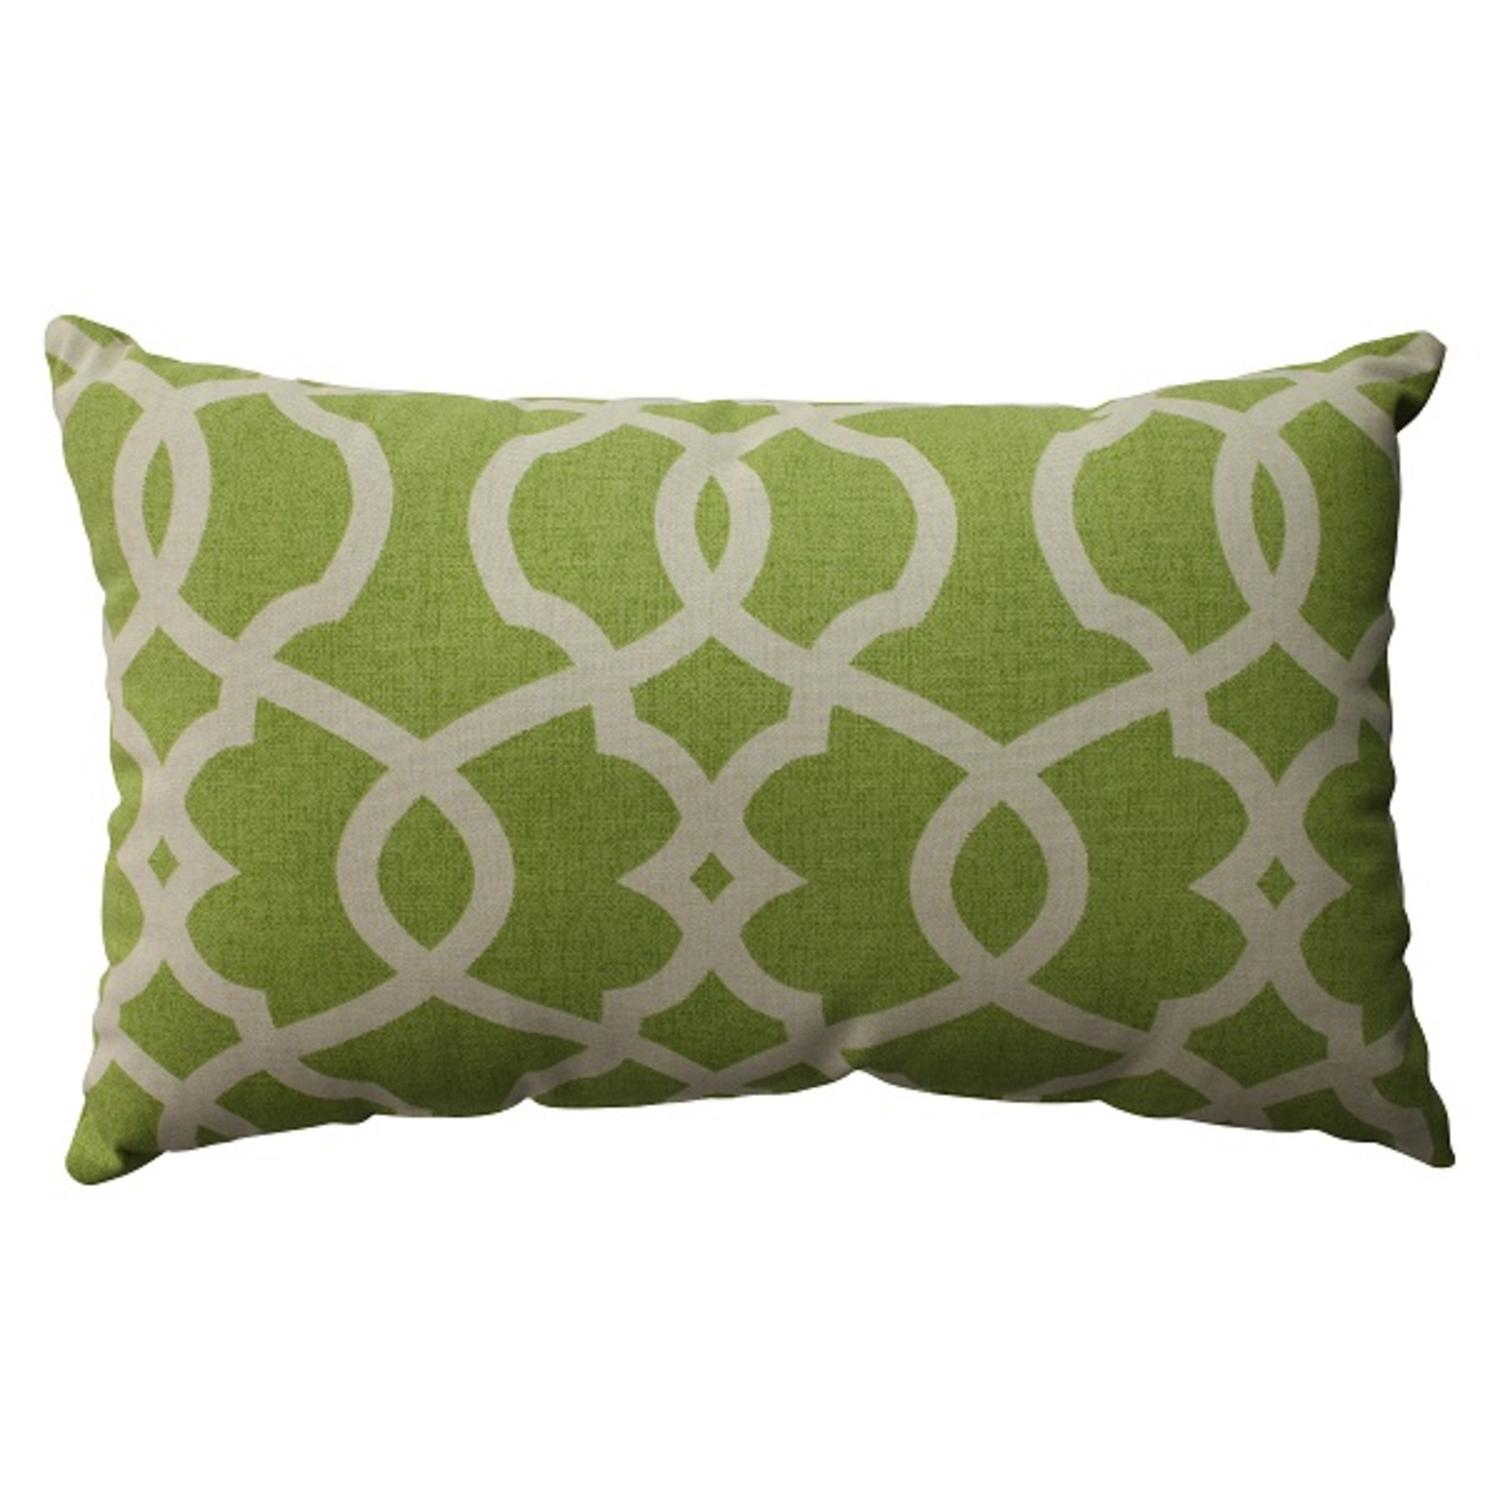 "18.5"" Green Apple Scrolling Rectangular Decorative Throw Pillow"